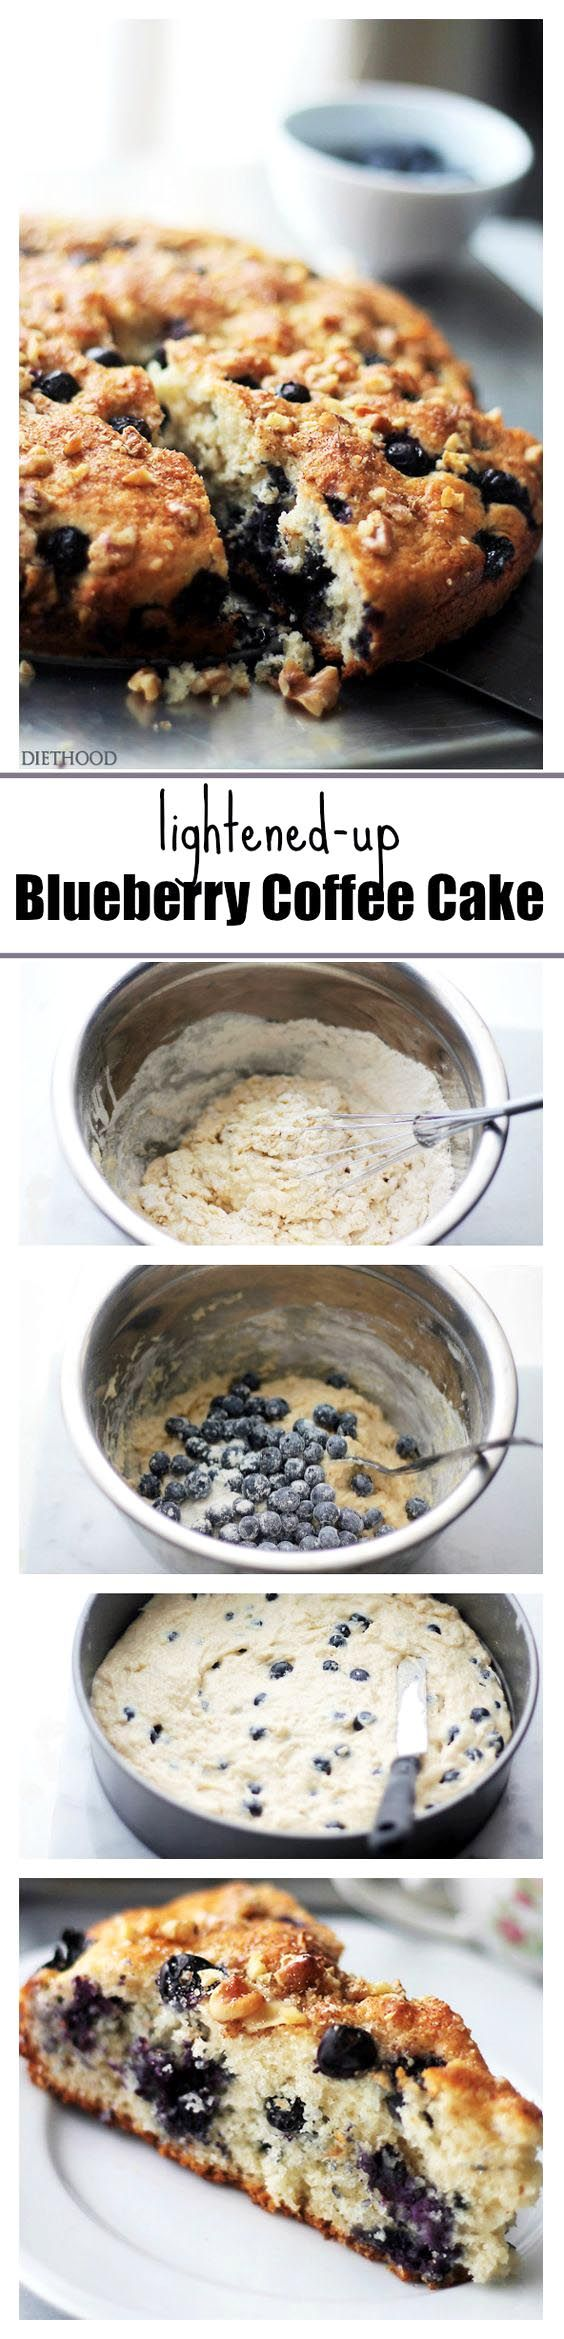 Lightened-Up Blueberry Coffee Cake – Soft, light and airy, this coffee cake is loaded with fresh blueberries and topped with sweet, crunchy walnuts.  Low calorie, but it sure doesn't taste like it! It's absolutely delicious!